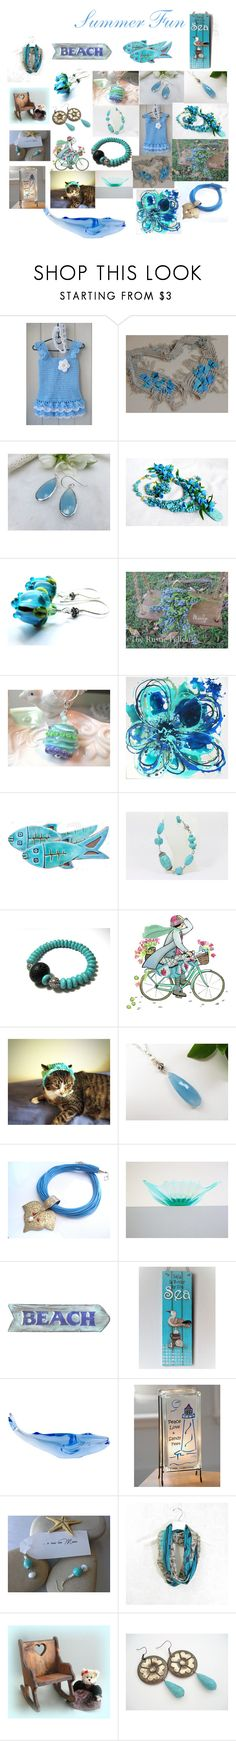 """""""Summer Fun"""" by therusticpelican ❤ liked on Polyvore featuring Cadeau, Volcanica, Baccarat, Lampara, modern, contemporary, rustic and vintage"""